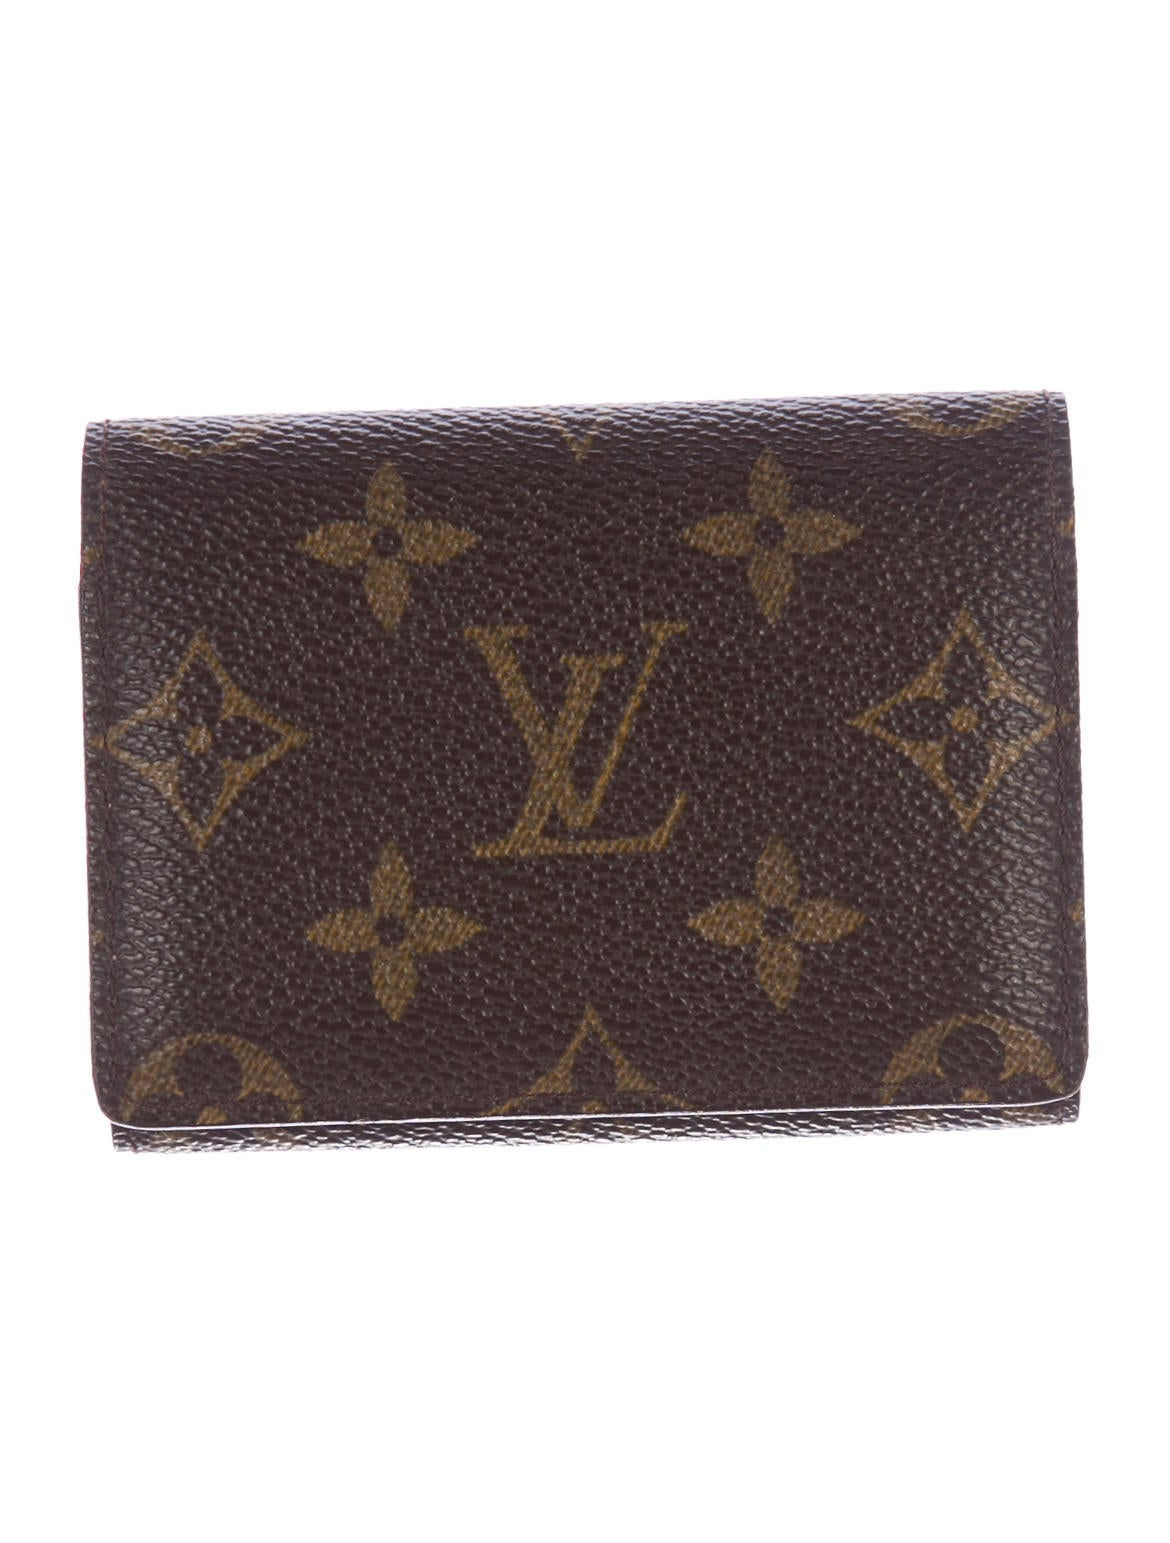 Louis Vuitton Monogram Business Card Holder - Accessories ...